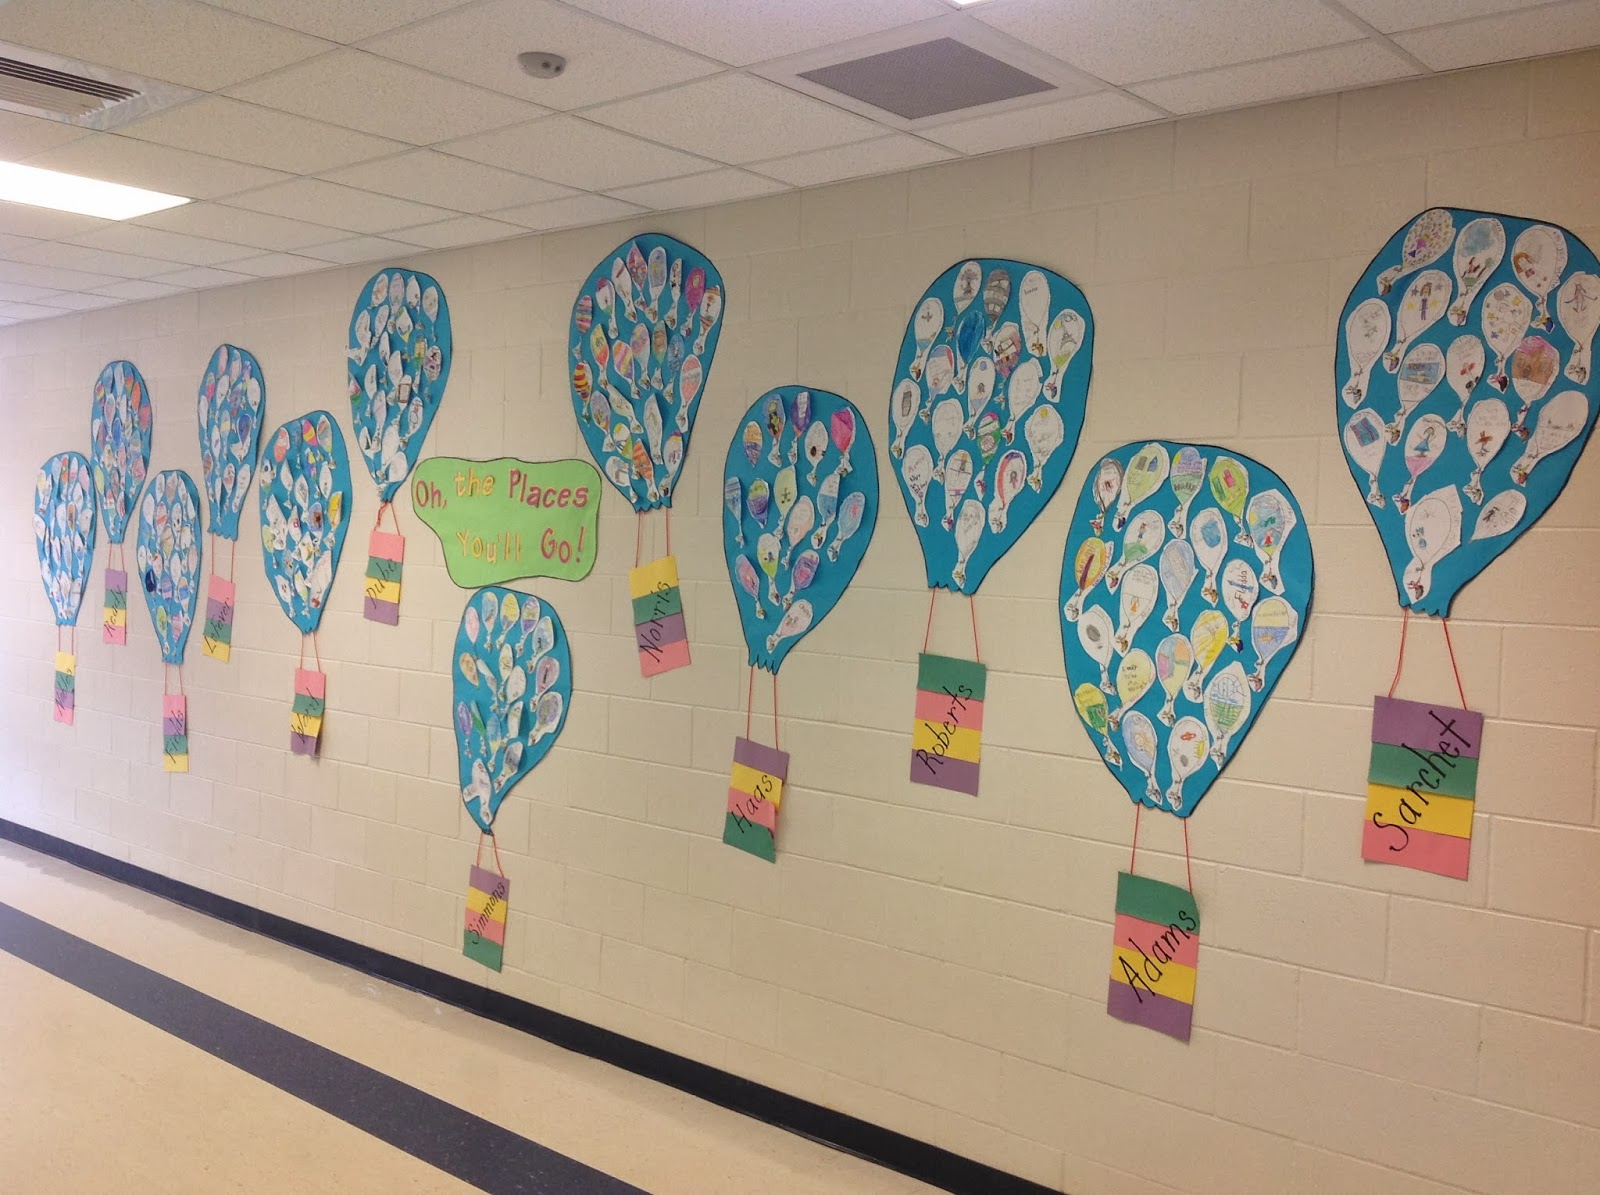 We Read The Book And Created Hot Air Balloons With Pictures Of Things Students Would Like To Do Be Or Achieve